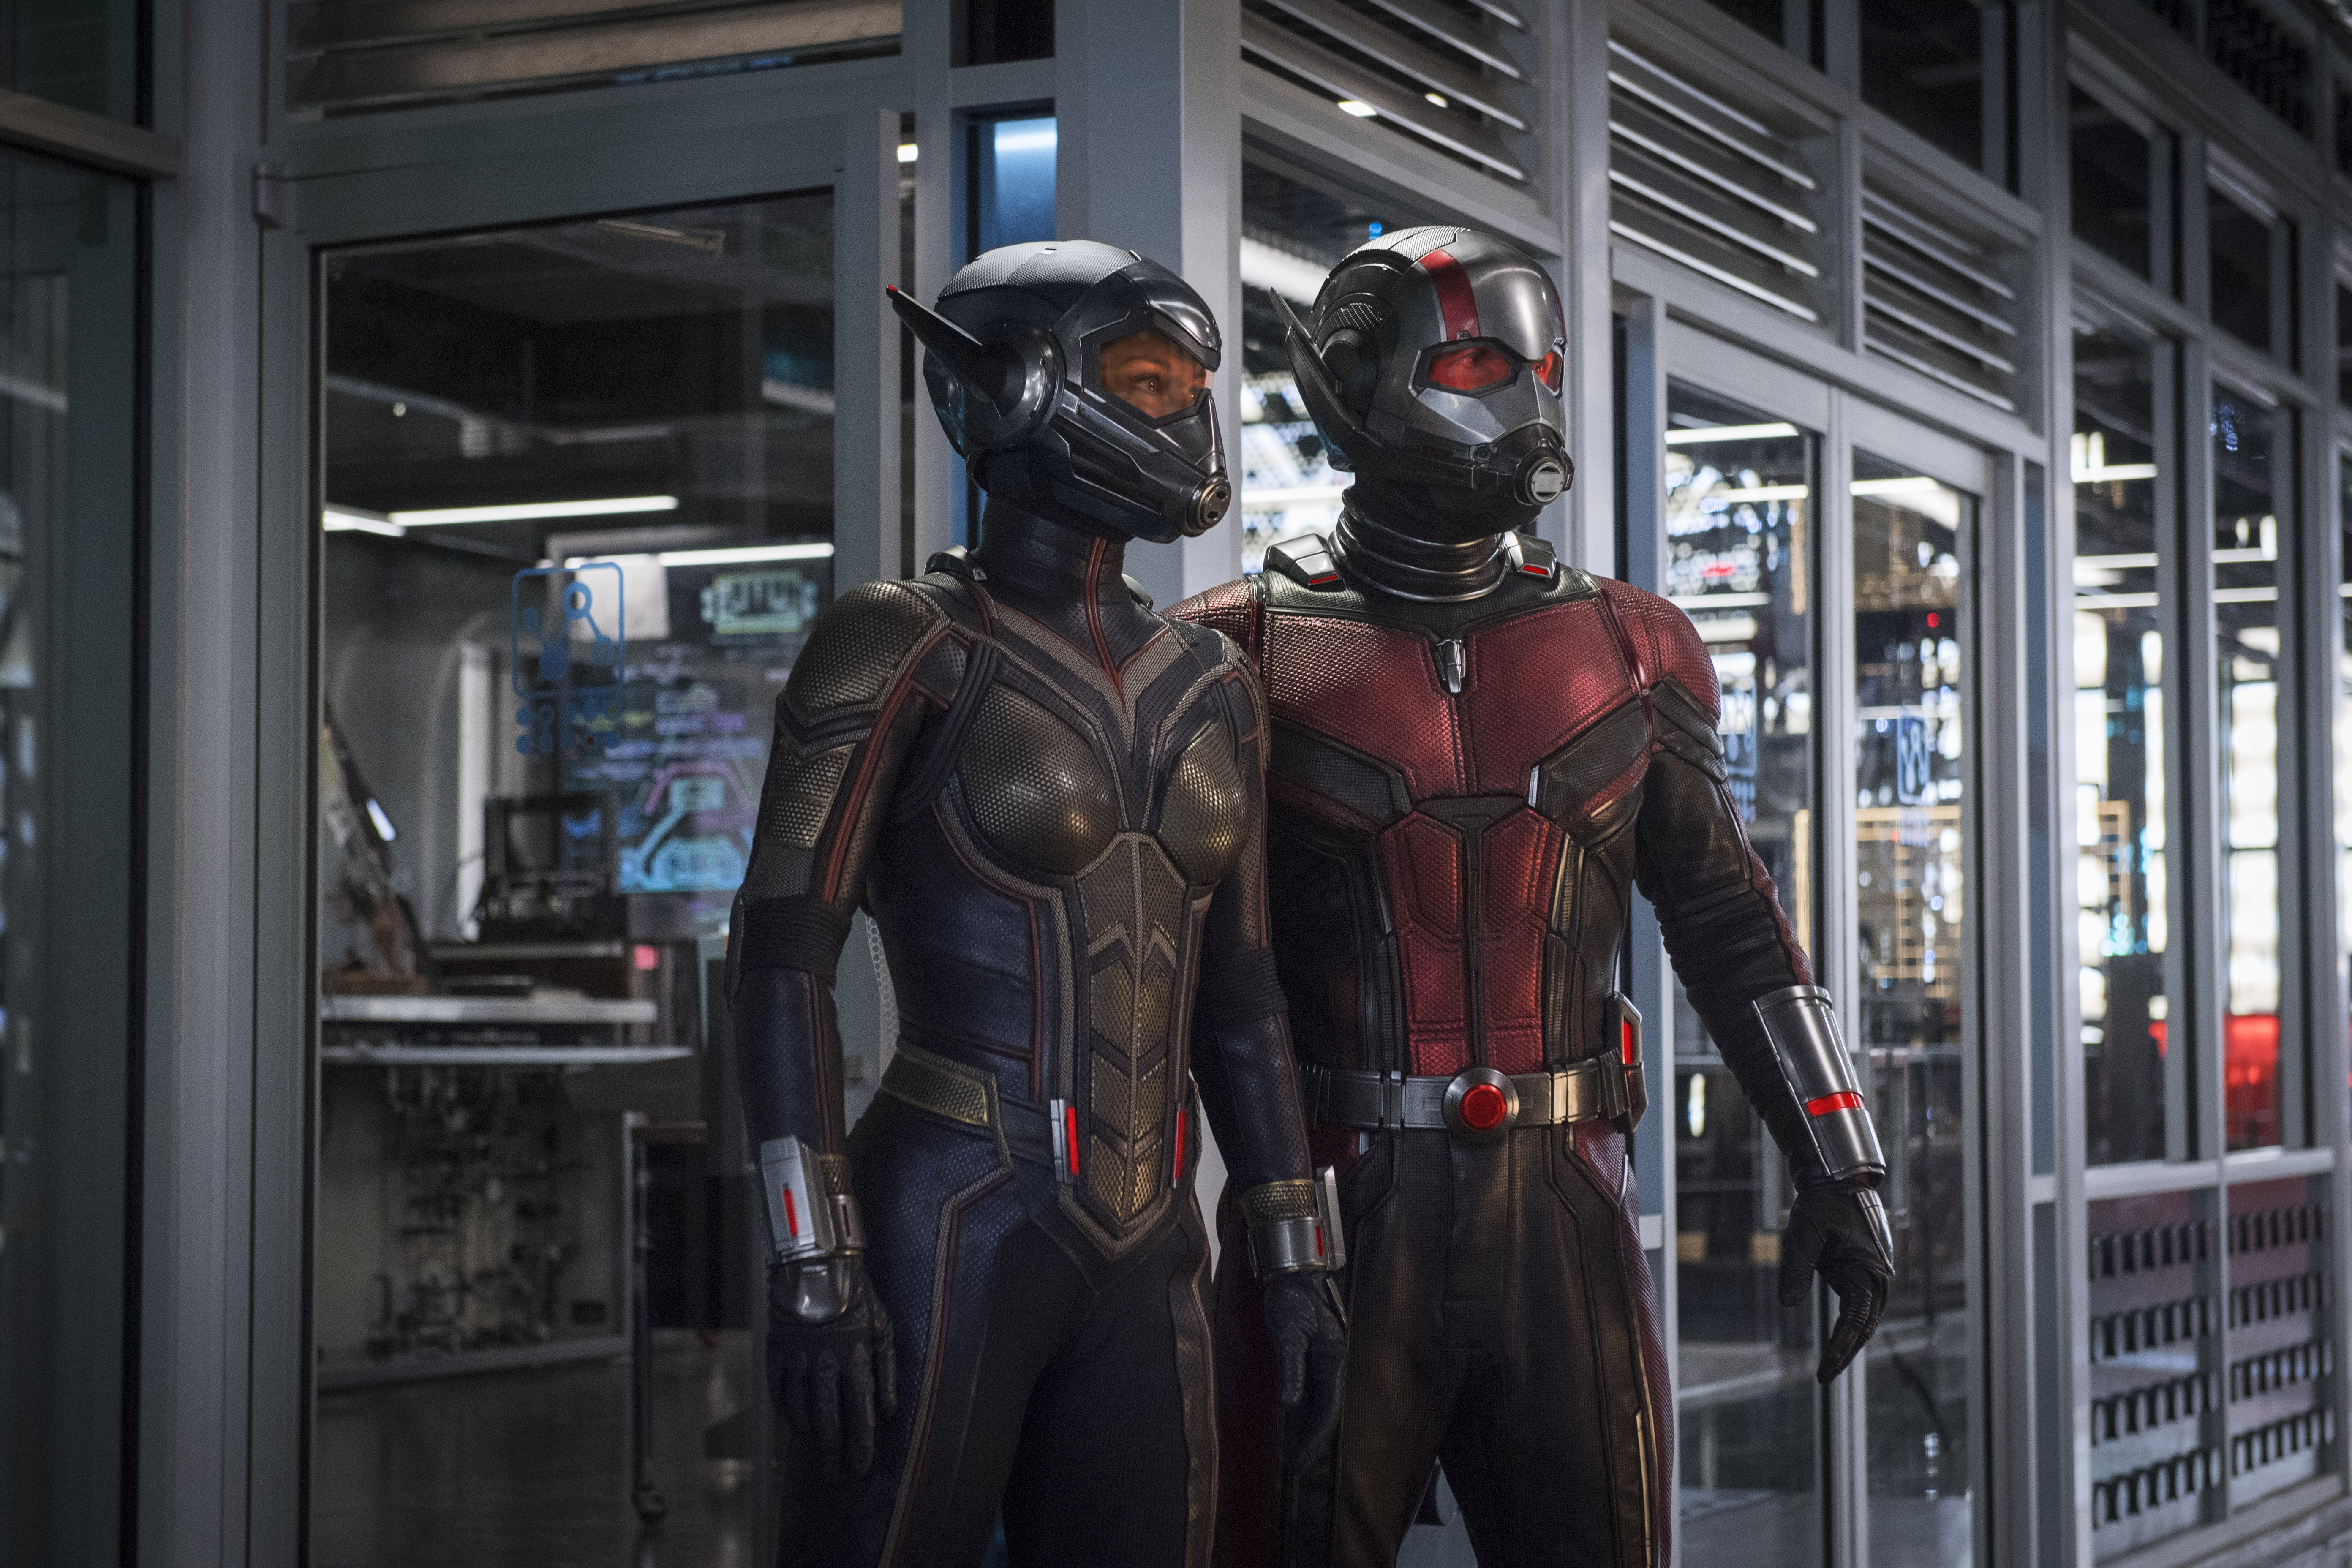 Ant Man Retina Movie Wallpaper: Ant Man And The Wasp 2018 5k, HD Movies, 4k Wallpapers